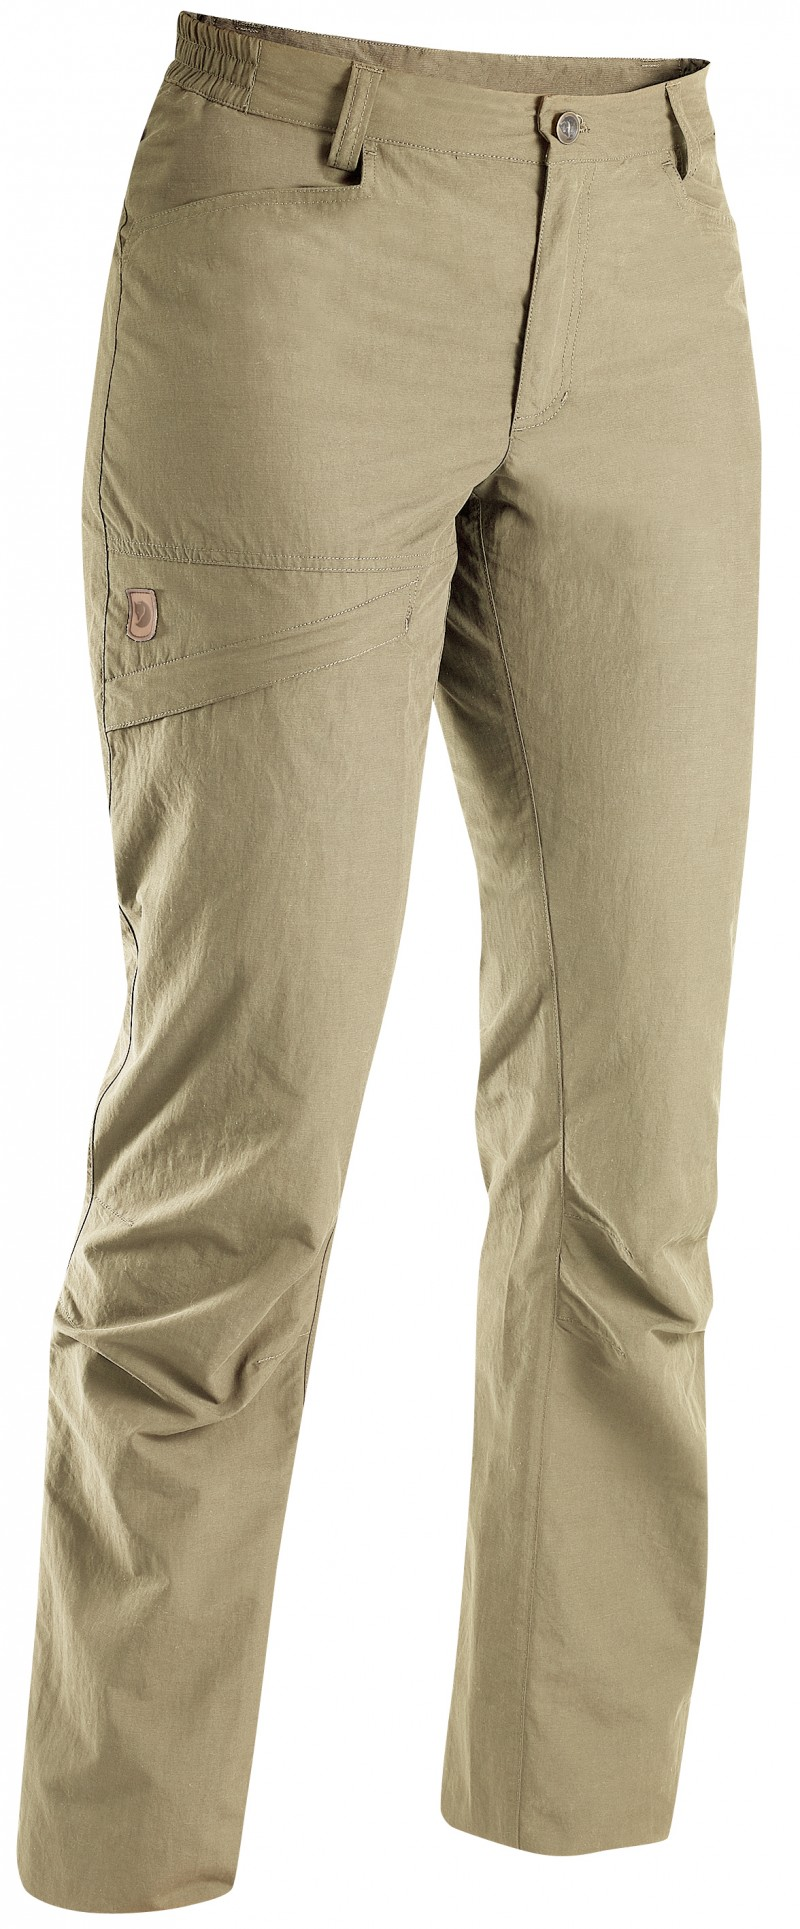 FjallRaven Daloa MT Trousers Light Khaki-30